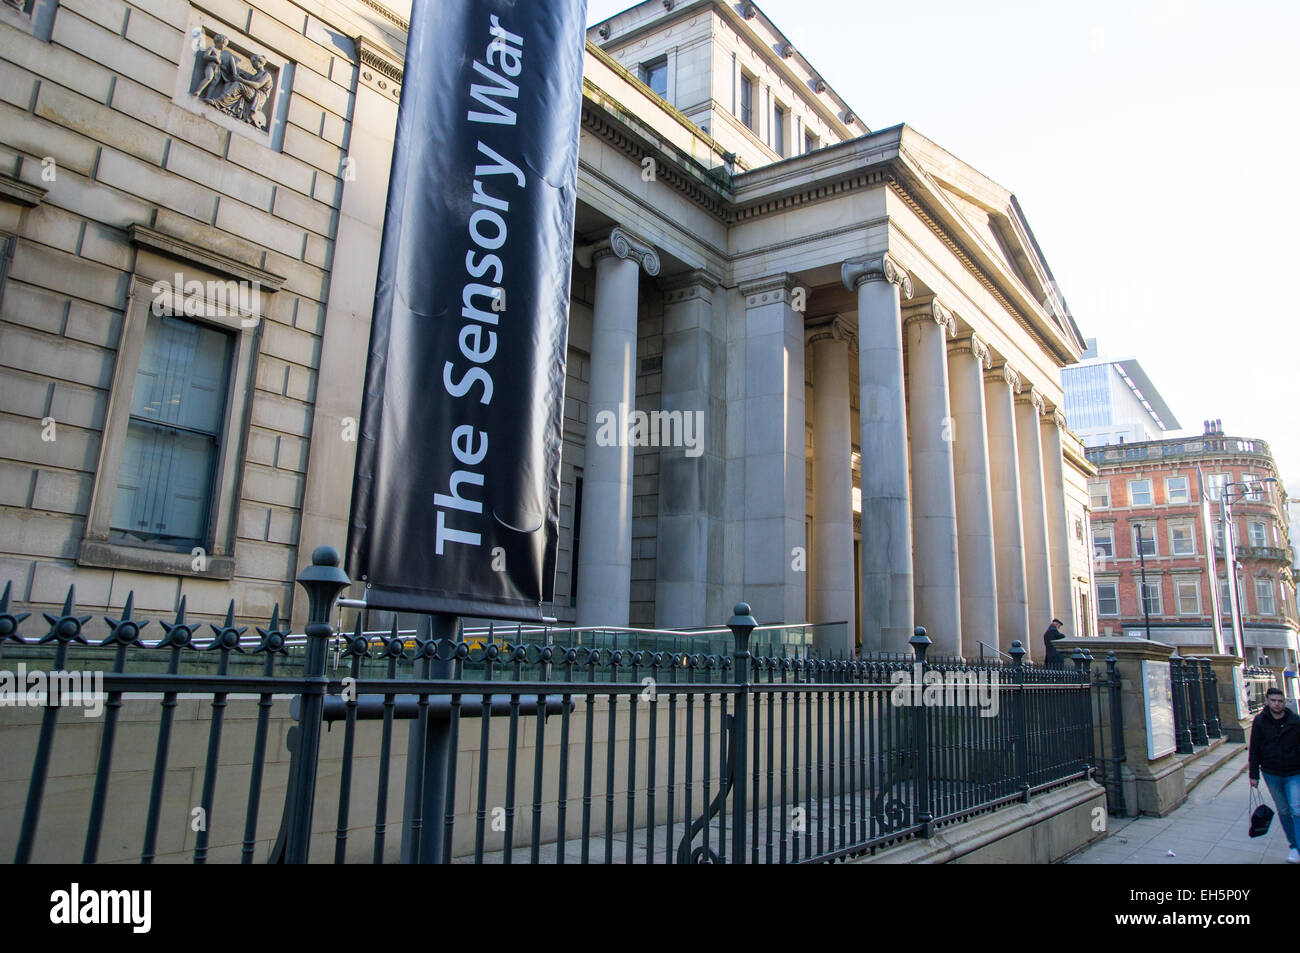 Manchester Art gallery, manchester city centre, UK - Stock Image